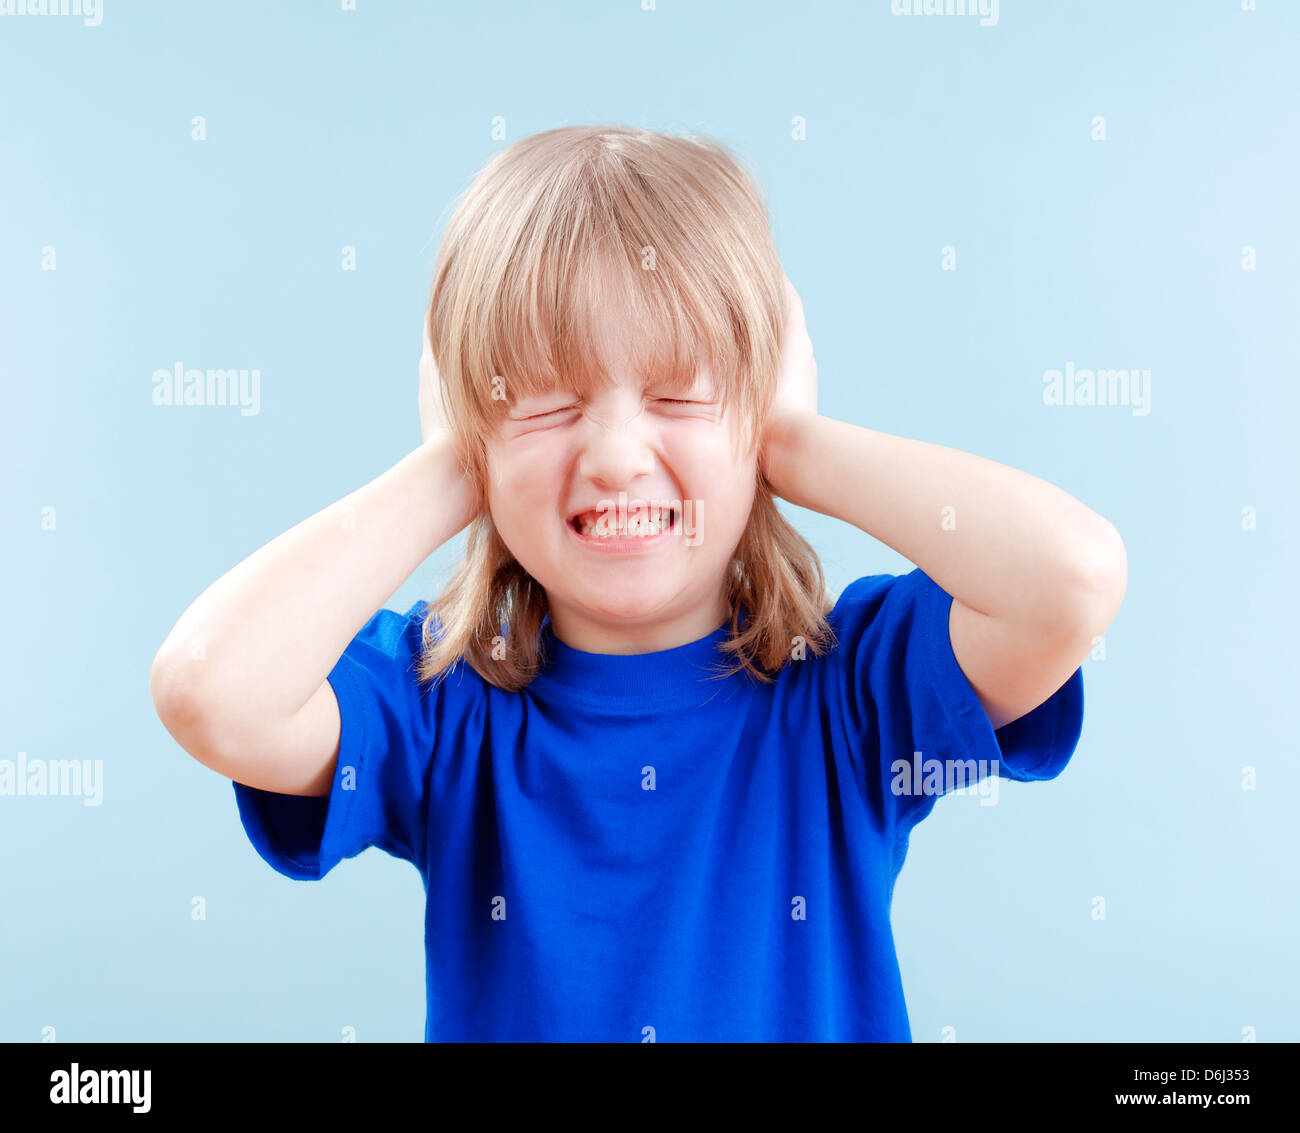 upset boy with long blond hair covering his ears as protection - isolated on blue - Stock Image